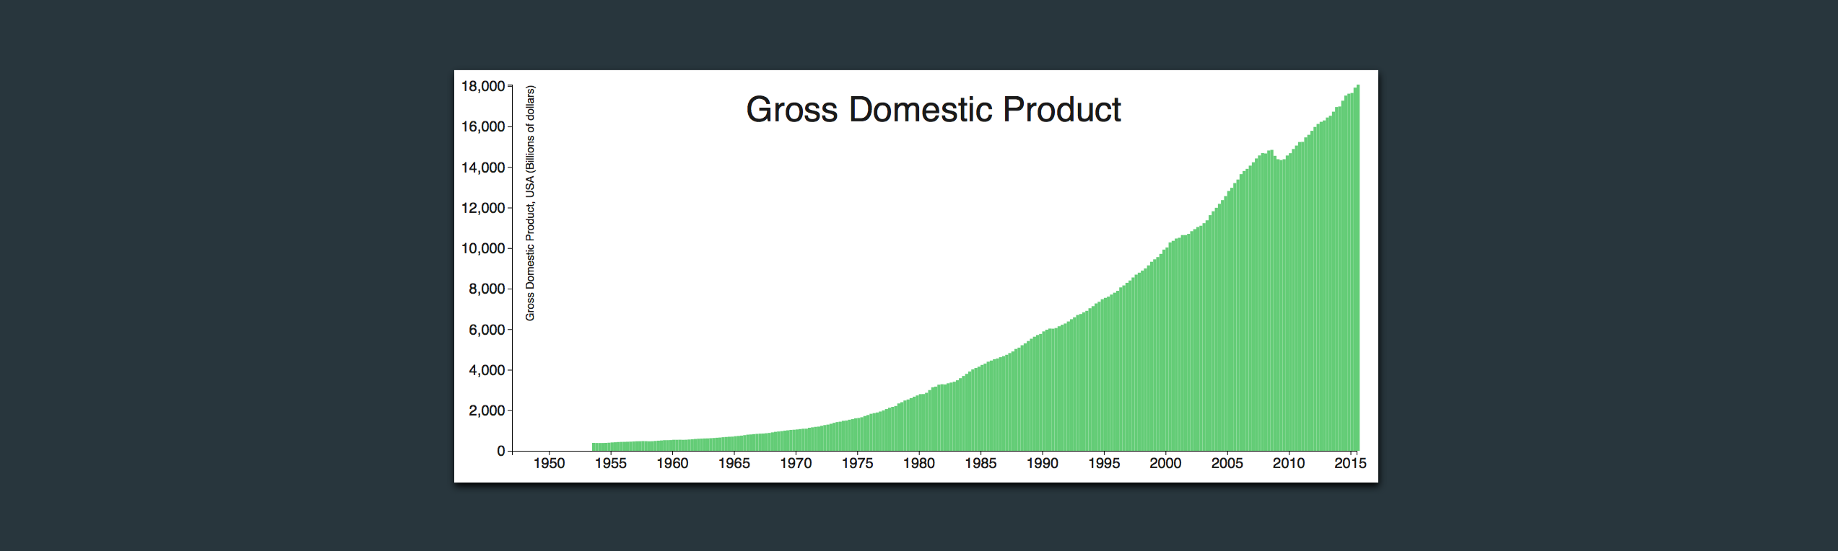 What I Learned While Creating an Animated Chart with D3 js